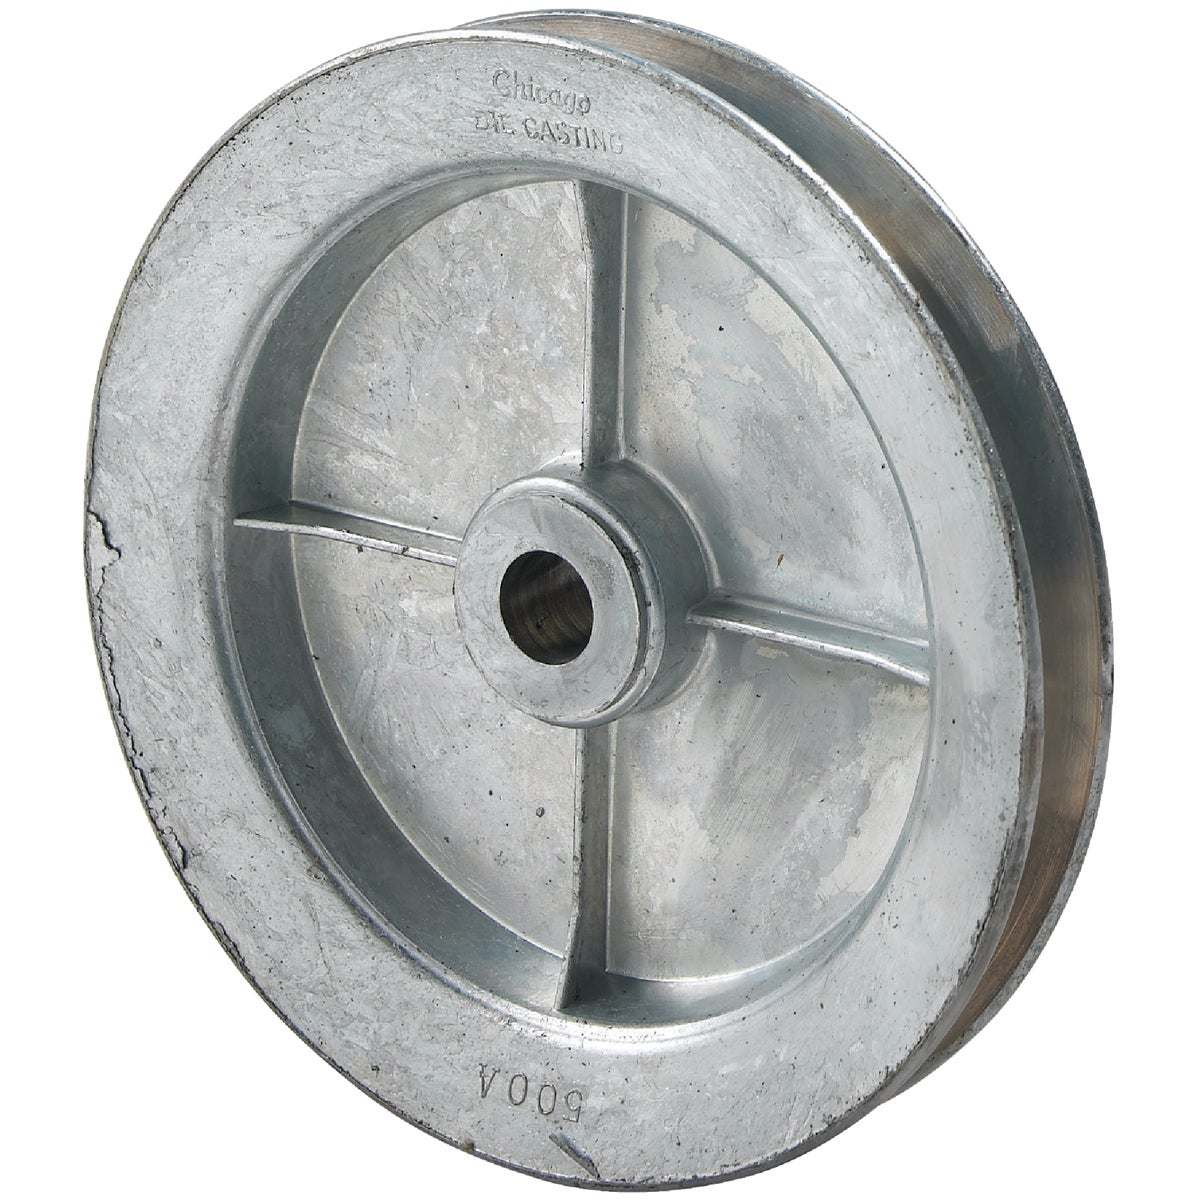 5X1/2 PULLEY - 500A5 by Chicago Die Casting